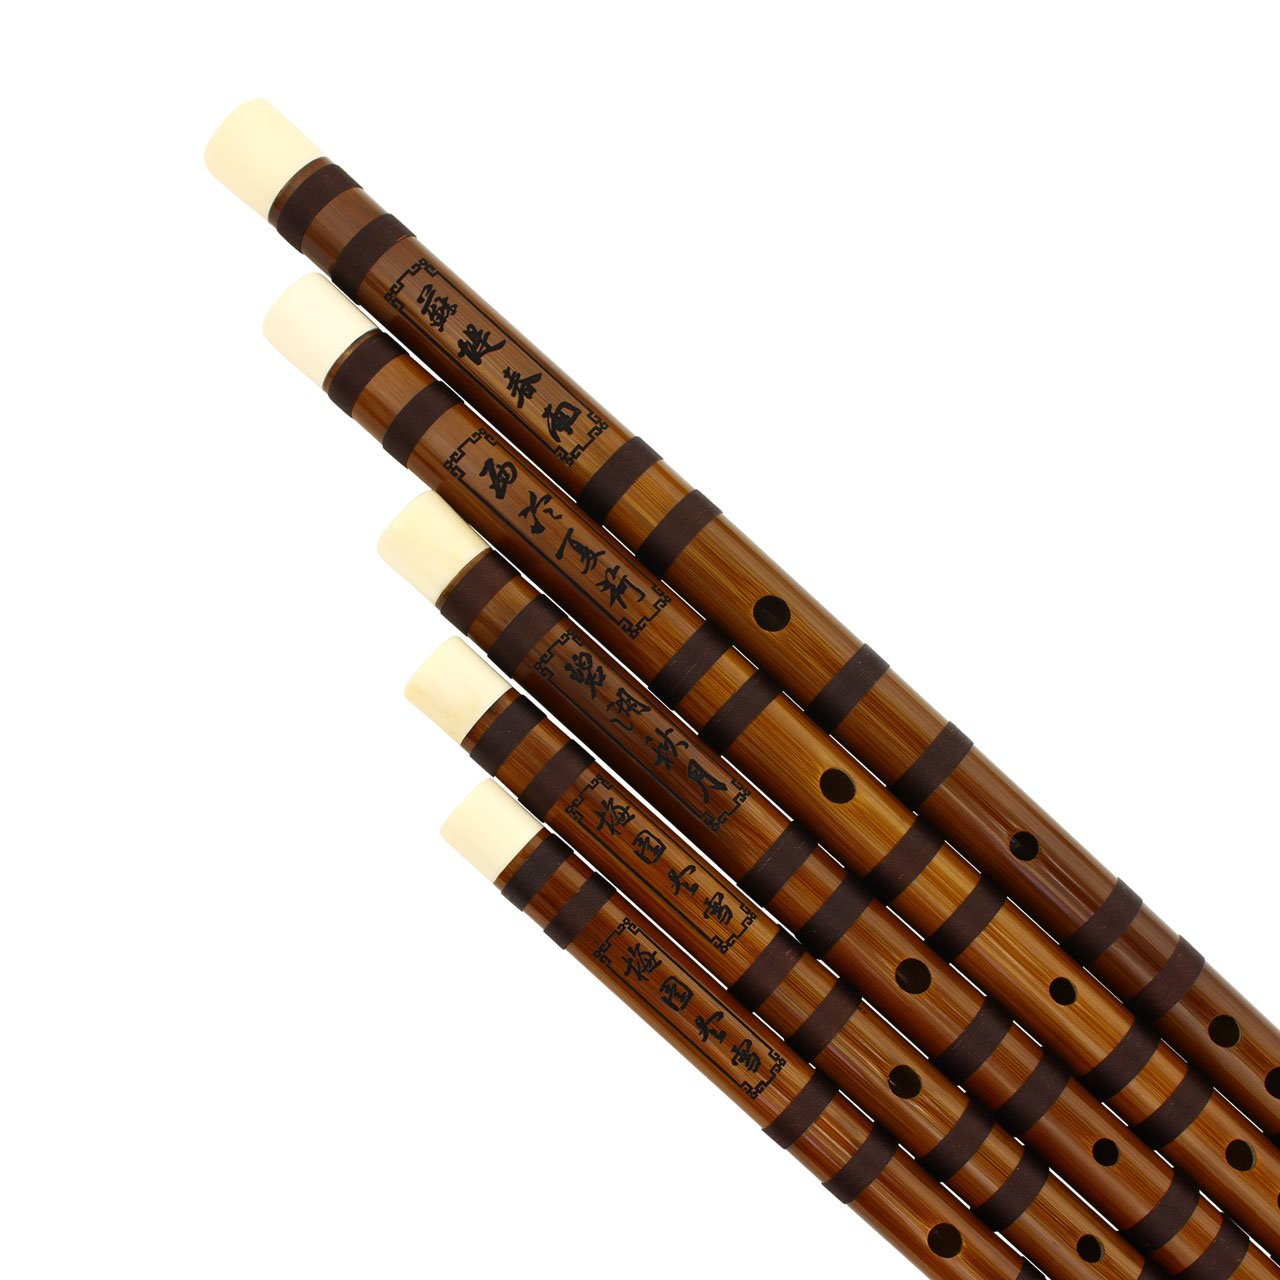 Eason Music - Best Dizi Bamboo Flute Set in the World - In C, D, E, F, G Key - Collector's Item